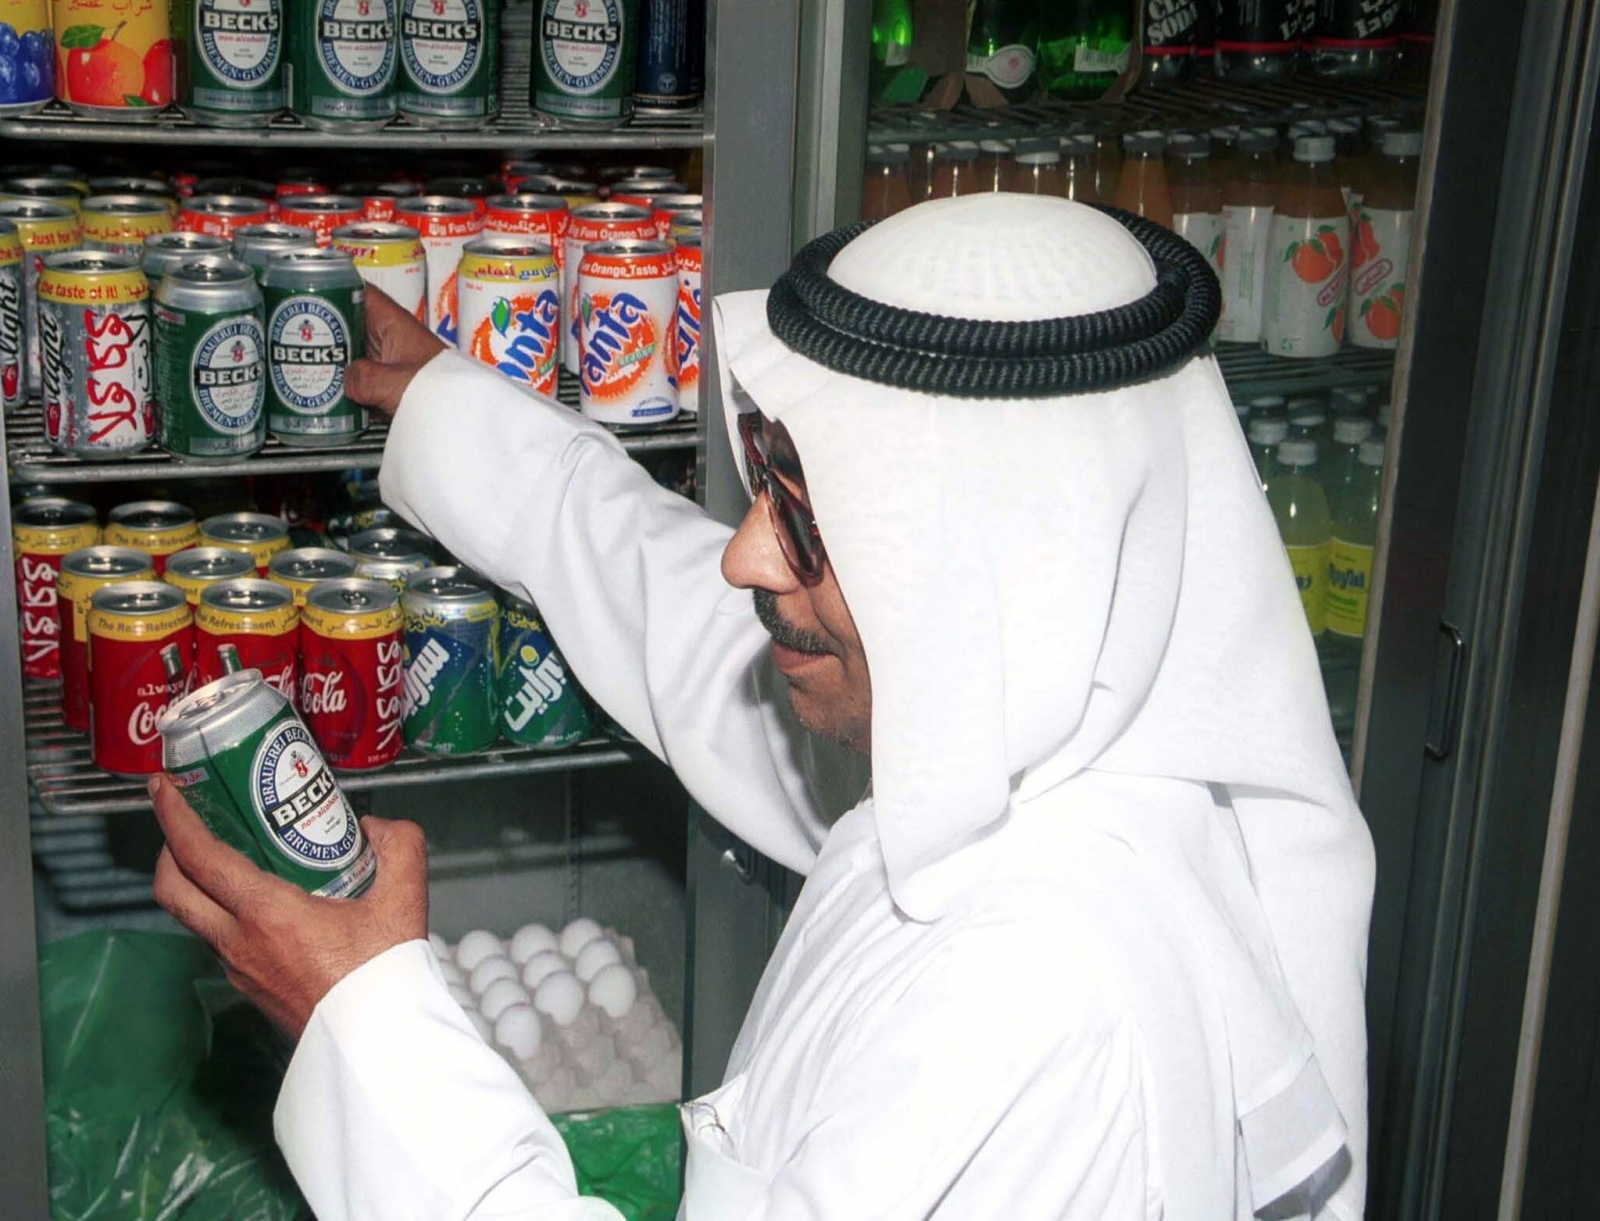 A Kuwaiti citizen Abu Yousif buys a can of non-alcoholic beer from a small grocery